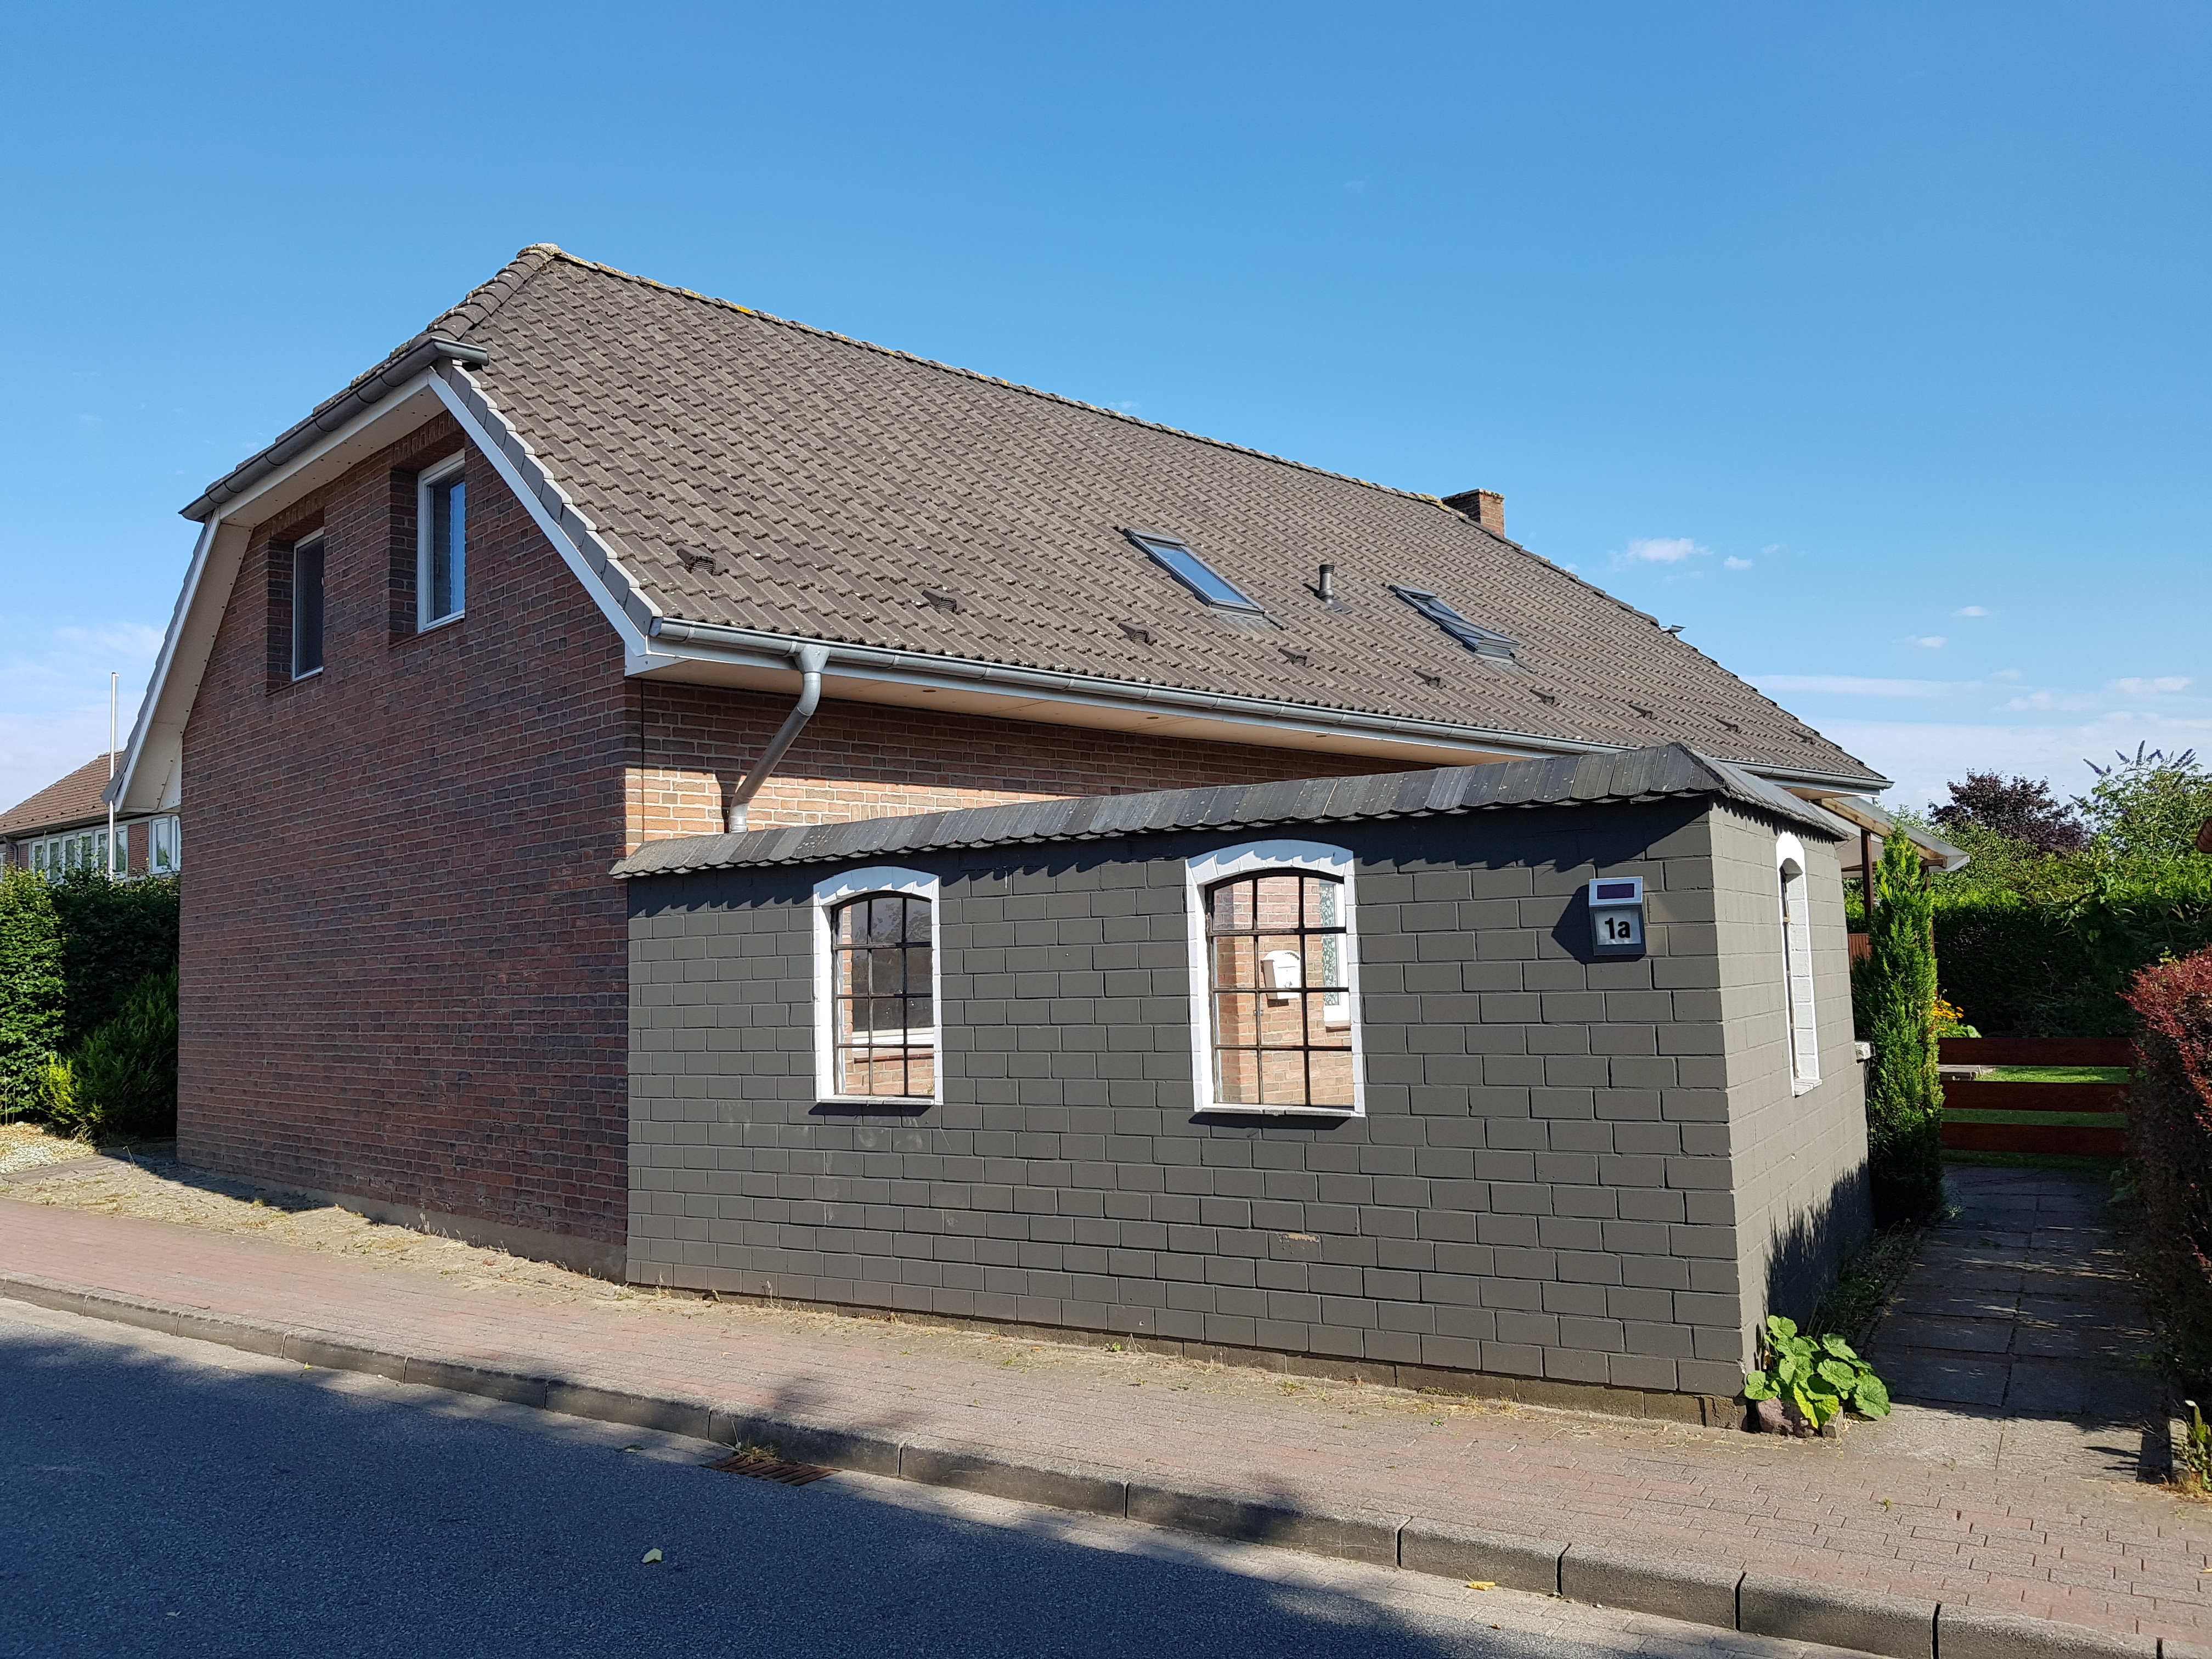 Doppelhaus In Traumhafter Lage Immobilien An Nordsee Und